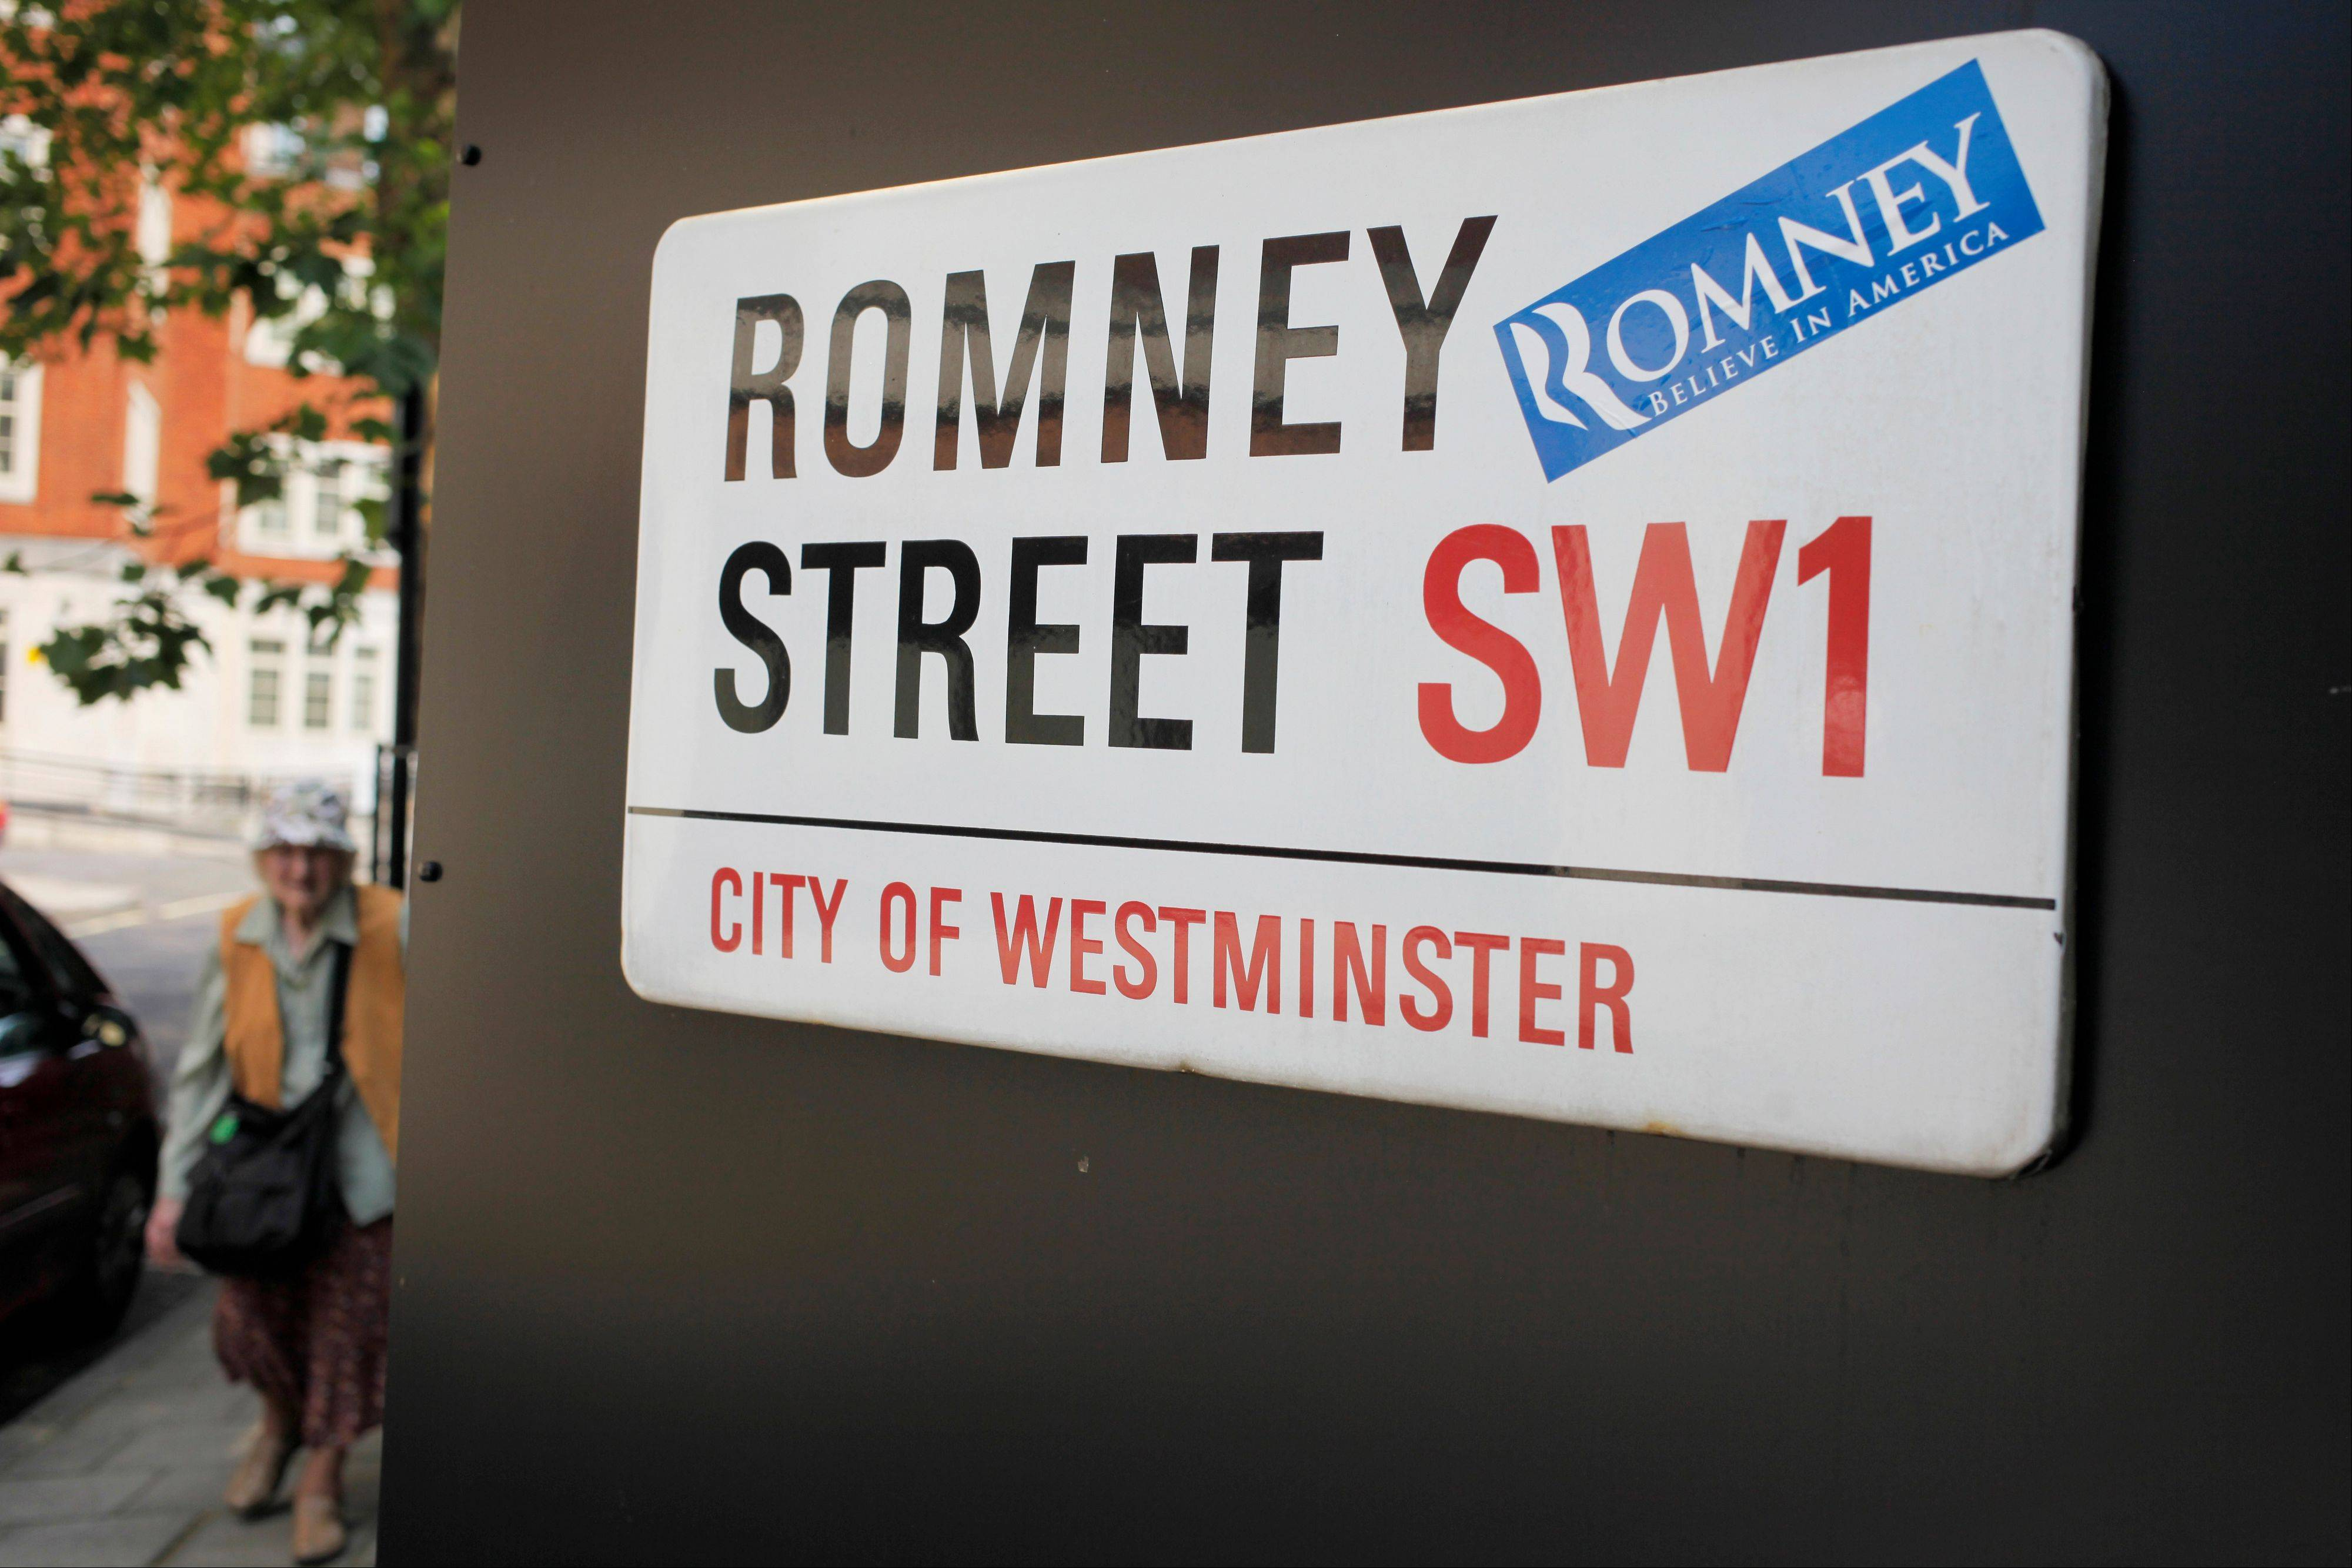 A campaign sticker for Republican presidential candidate, former Massachusetts Gov. Mitt Romney is seen on a street sign for Romney Street in London on Wednesday. The GOP candidate arrived in London to meet with world leaders, hold fundraisers and attend the opening of the Olympic games.